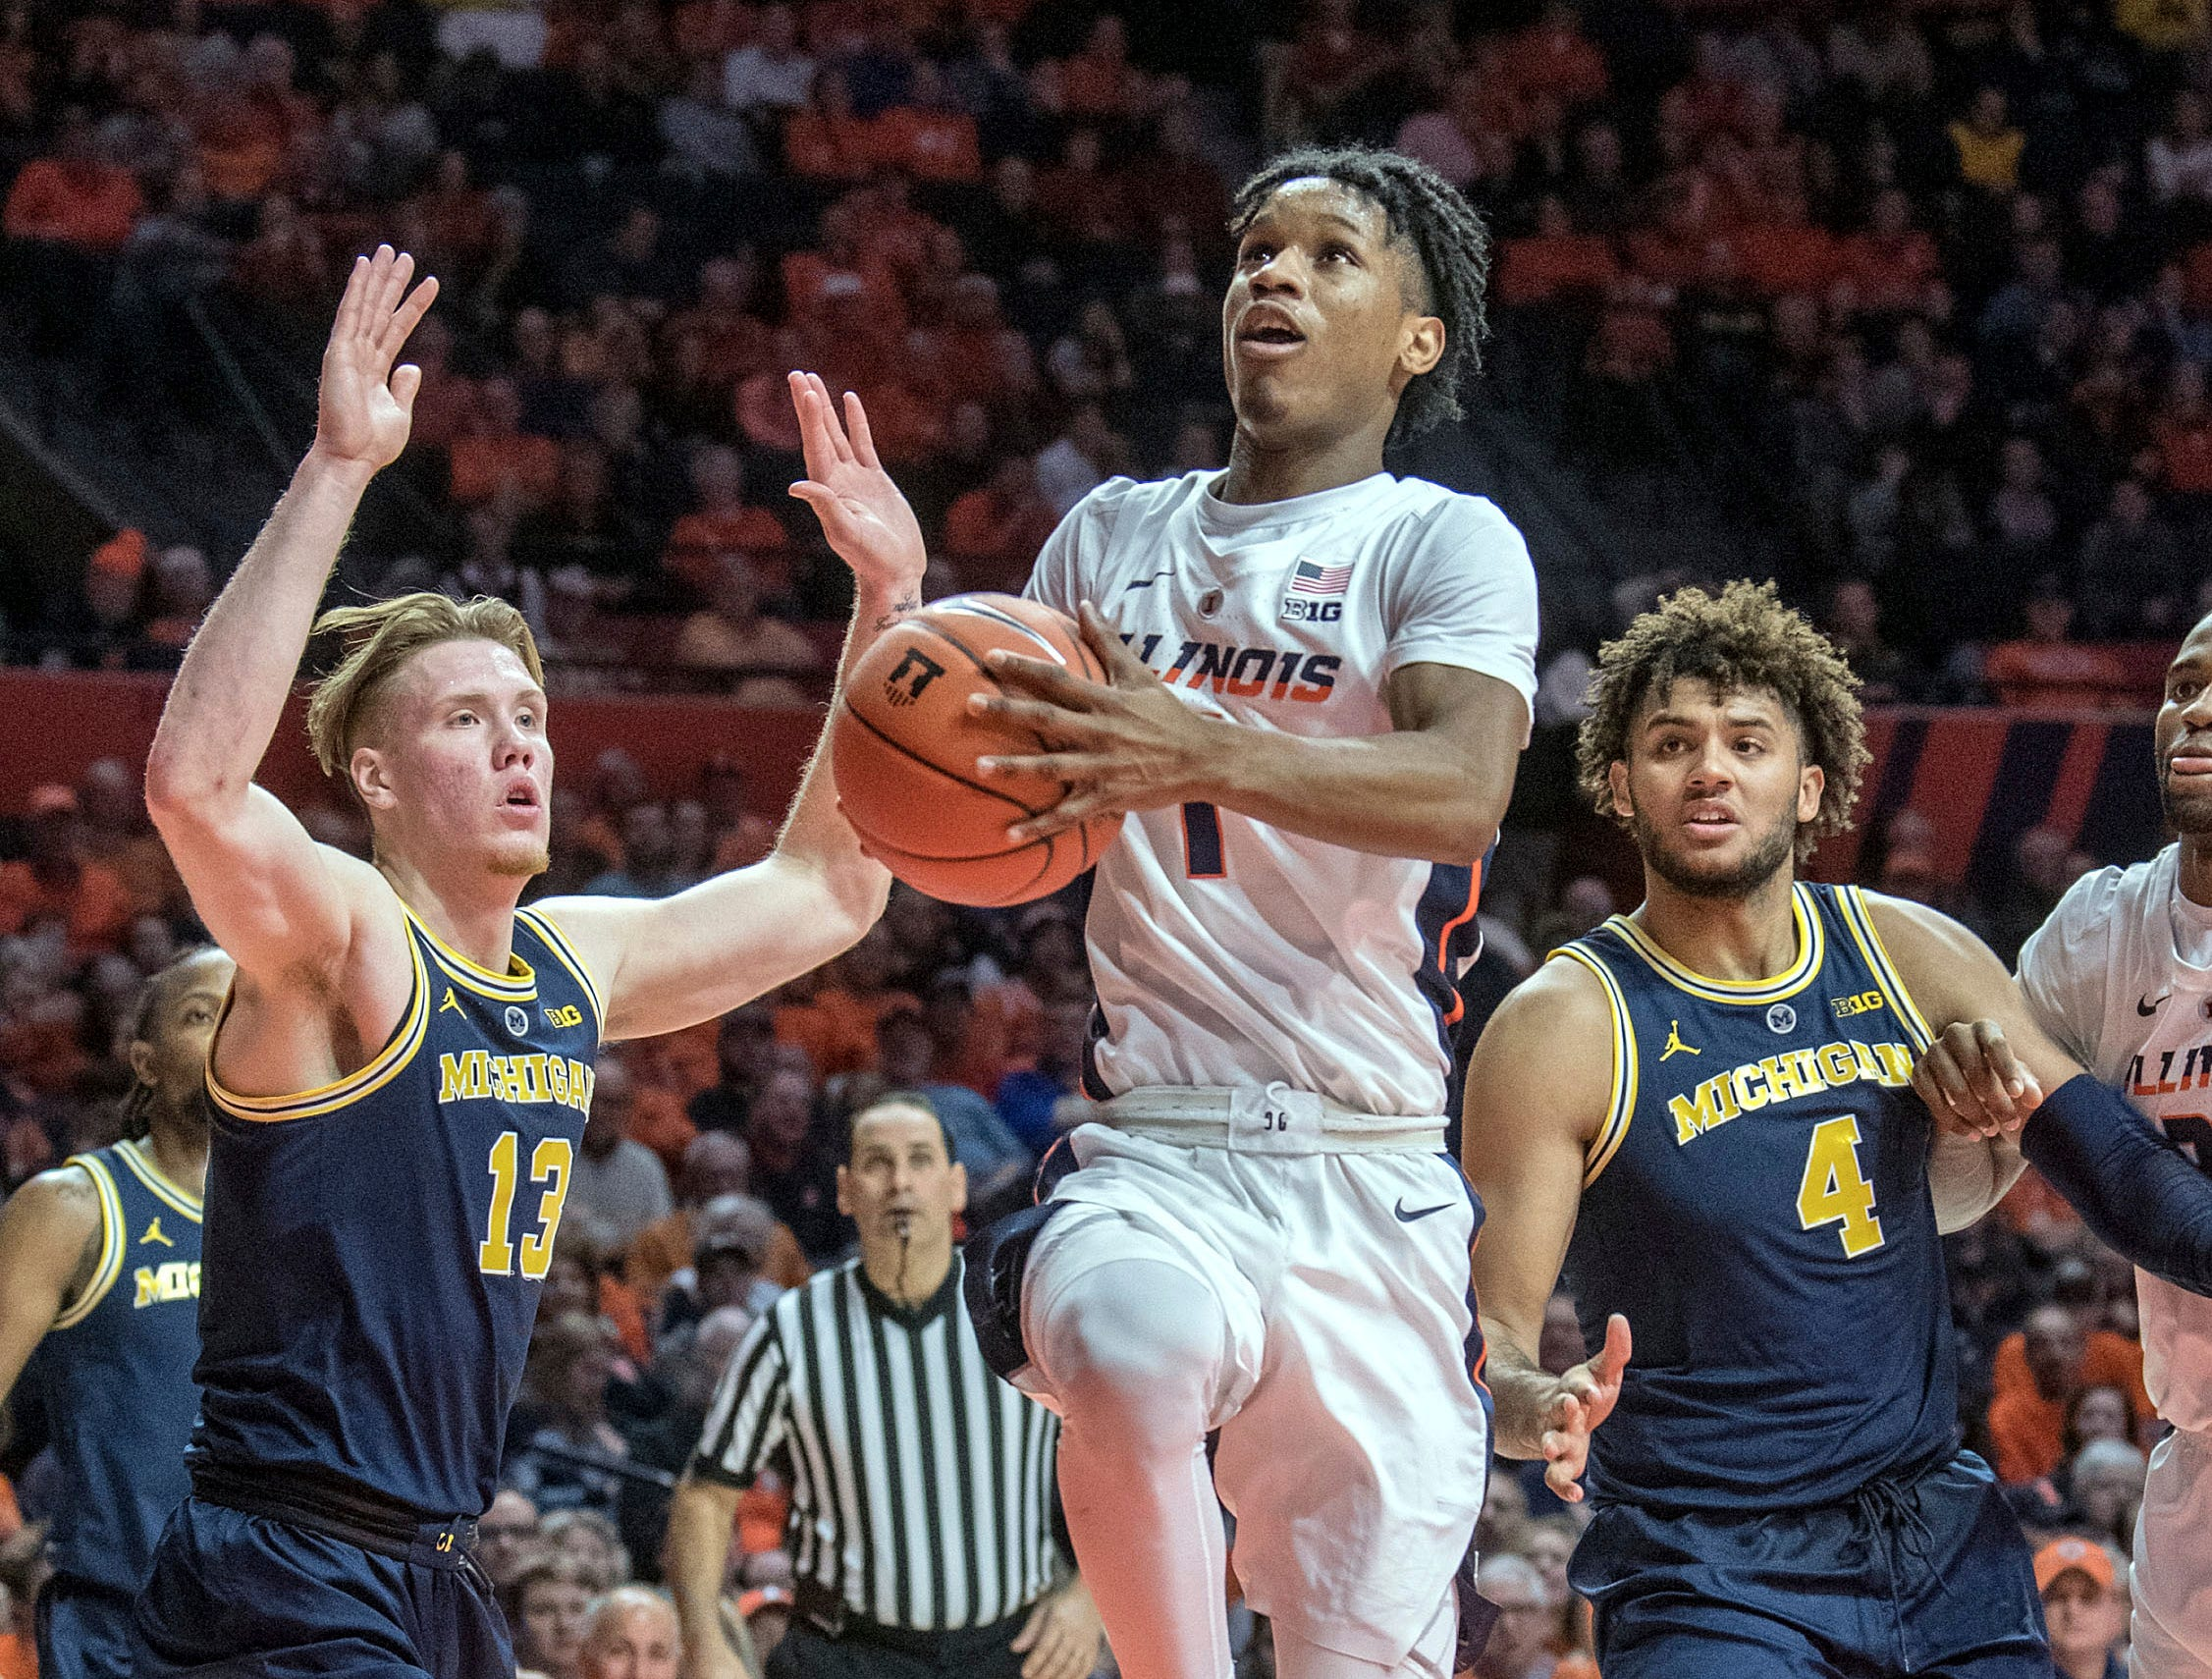 Illinois guard Trent Frazier (1) drives to the basket between Michigan forwards Ignas Brazdeikis (13) and Isaiah Livers (4) during the first half.